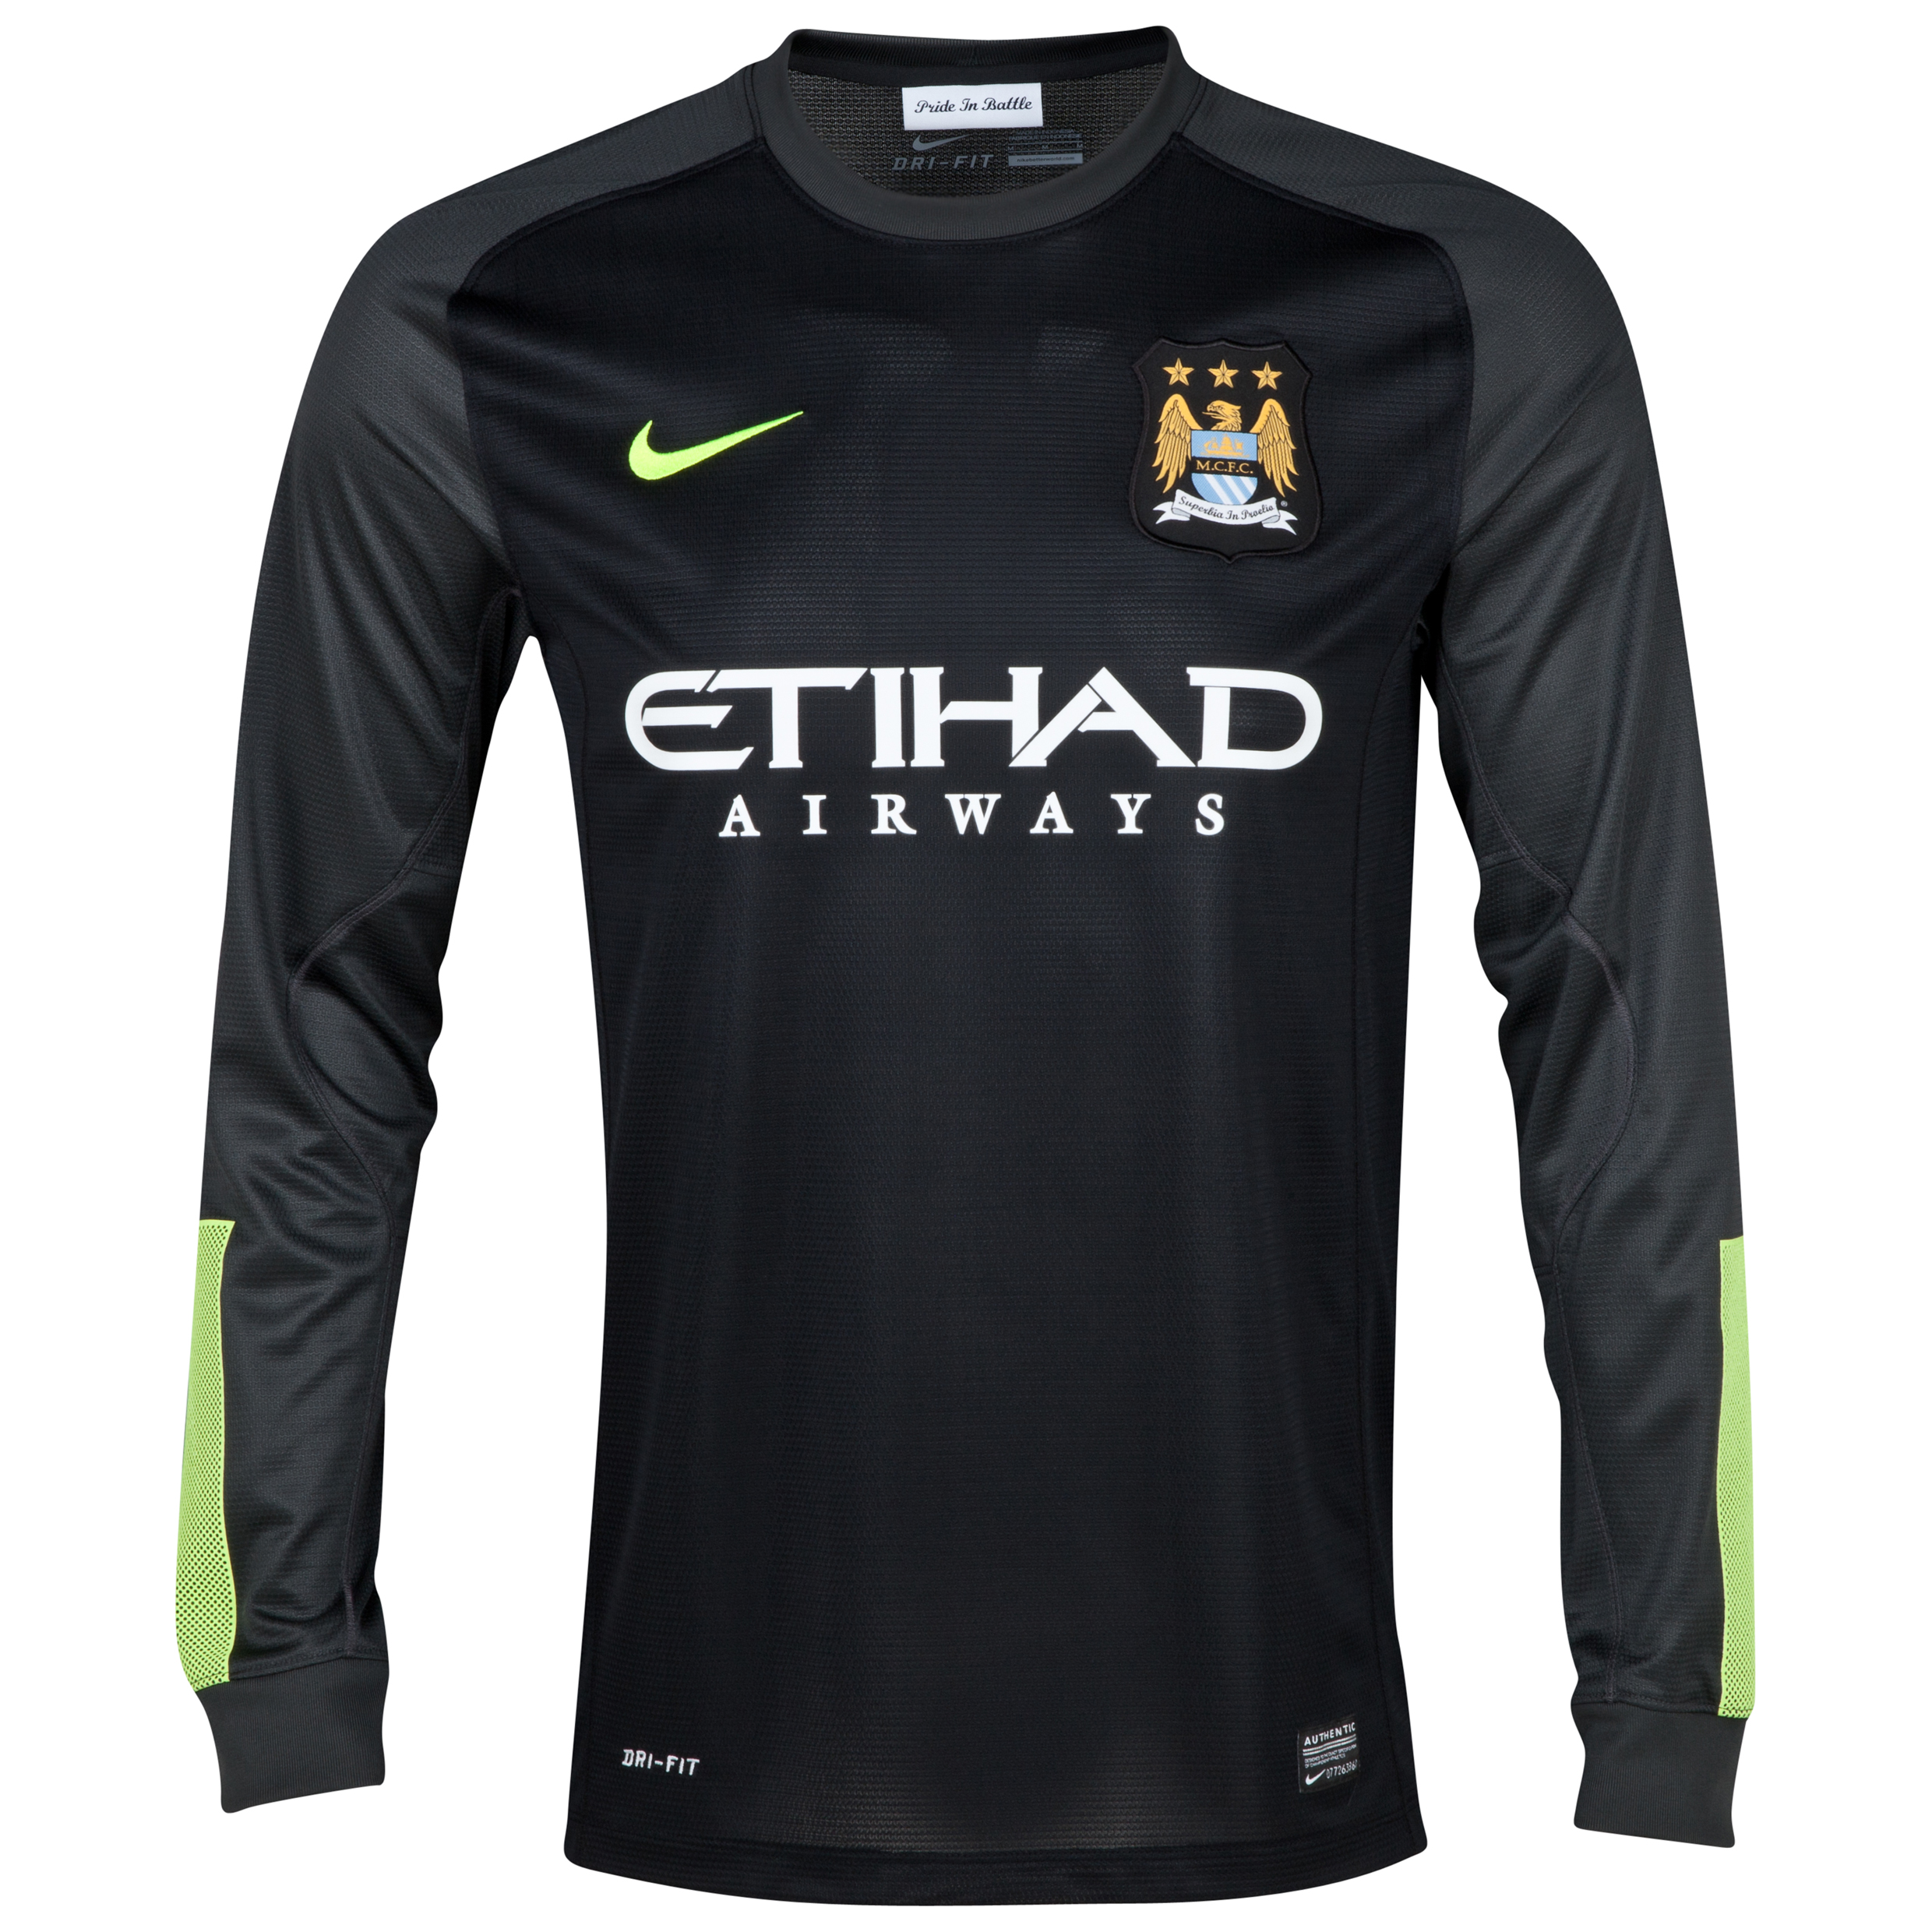 Manchester City Option 2 Goalkeeper Shirt 2013/14 - Black